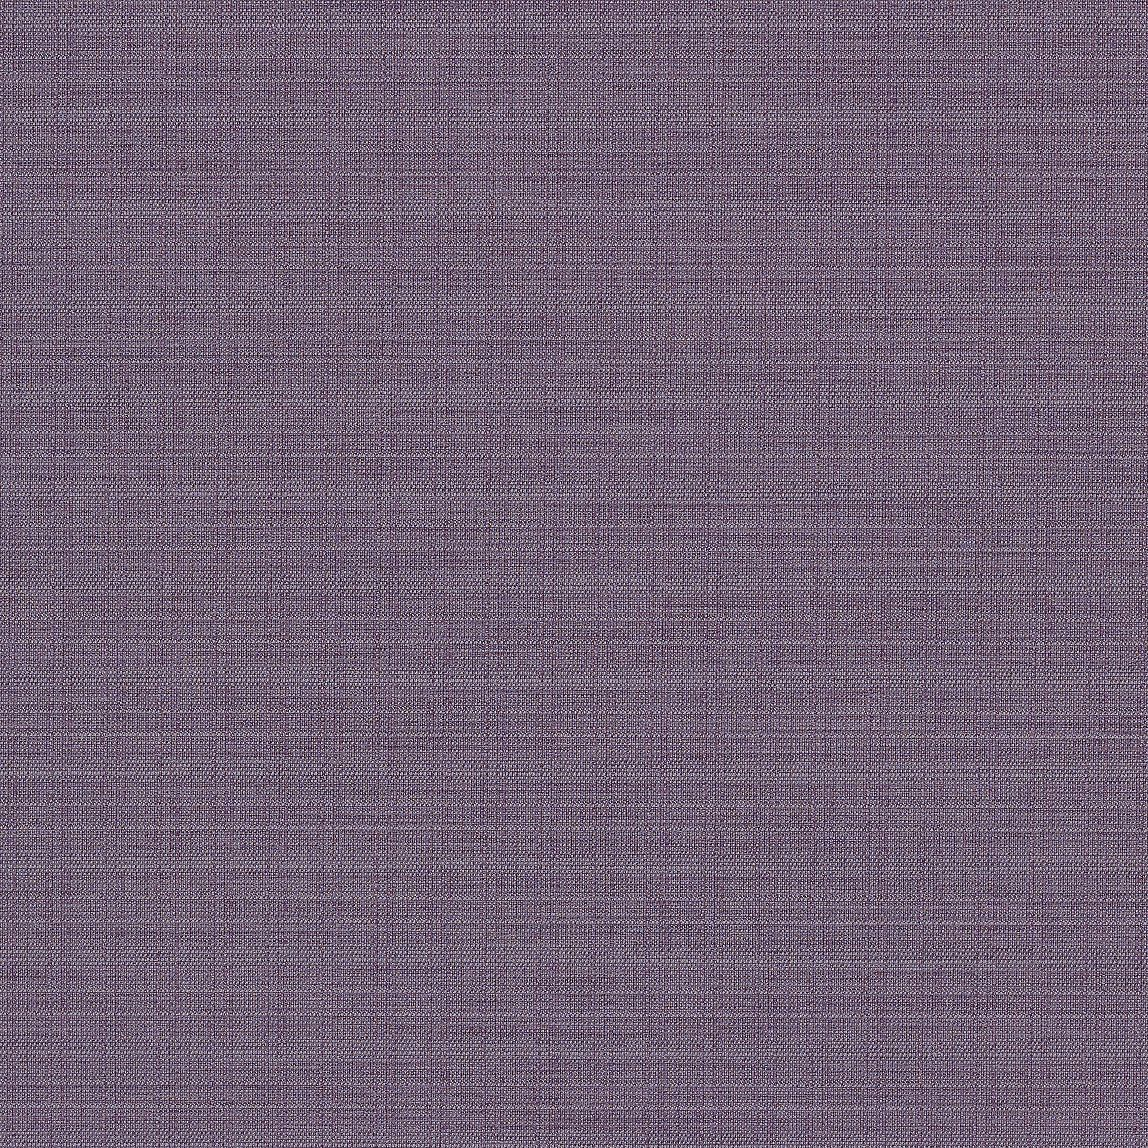 Squire Grape Swatch